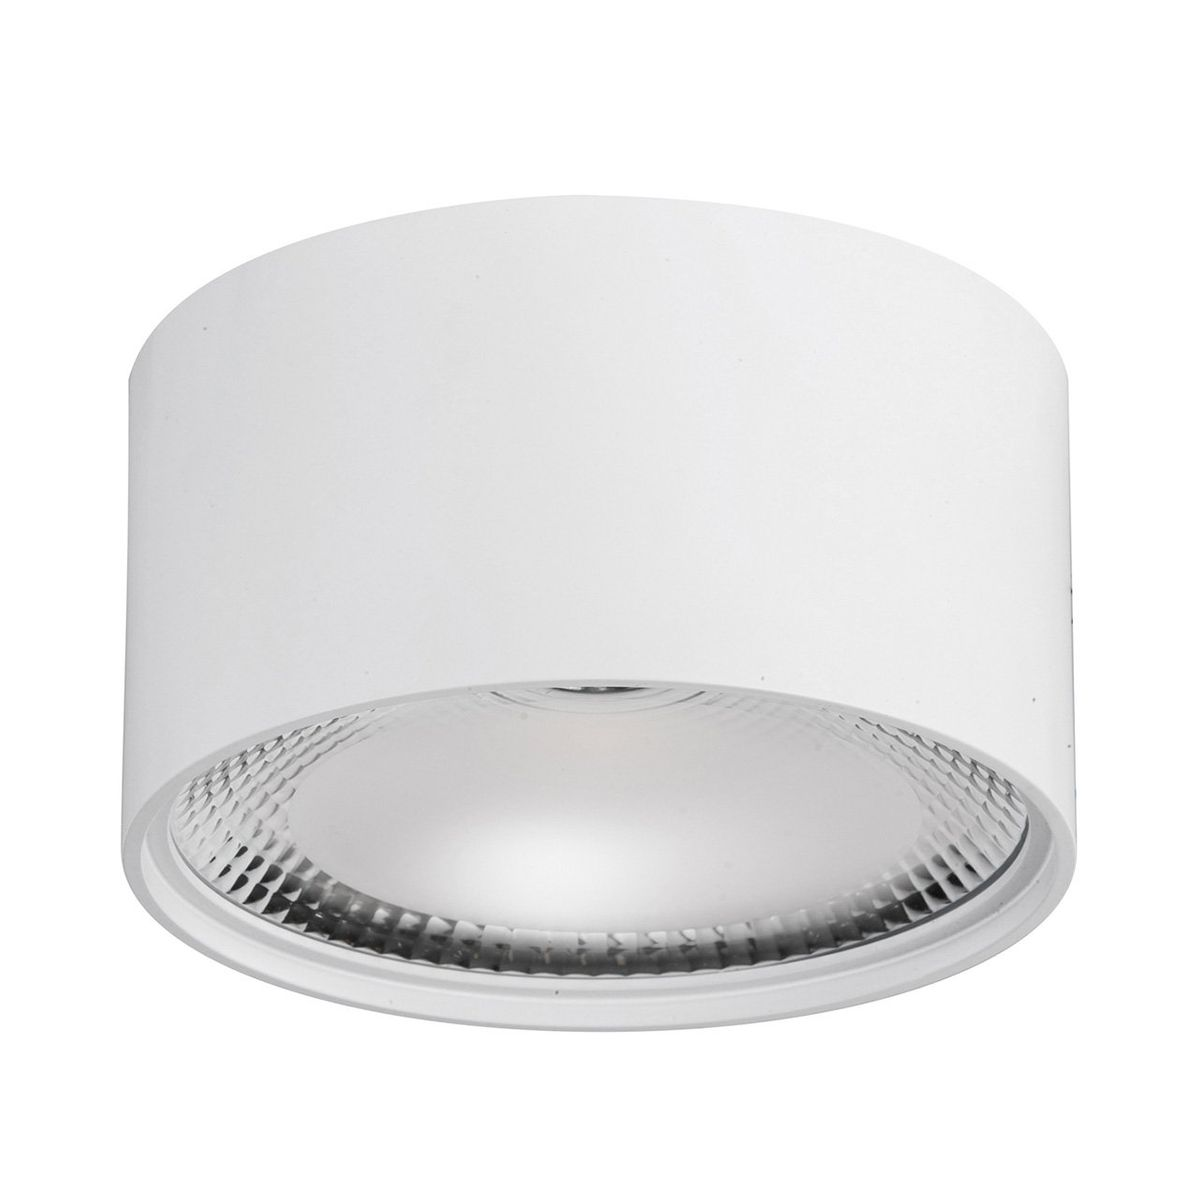 HV5805-WHT - NELLA White 18w Surface Mounted LED Downlight – Bild 1